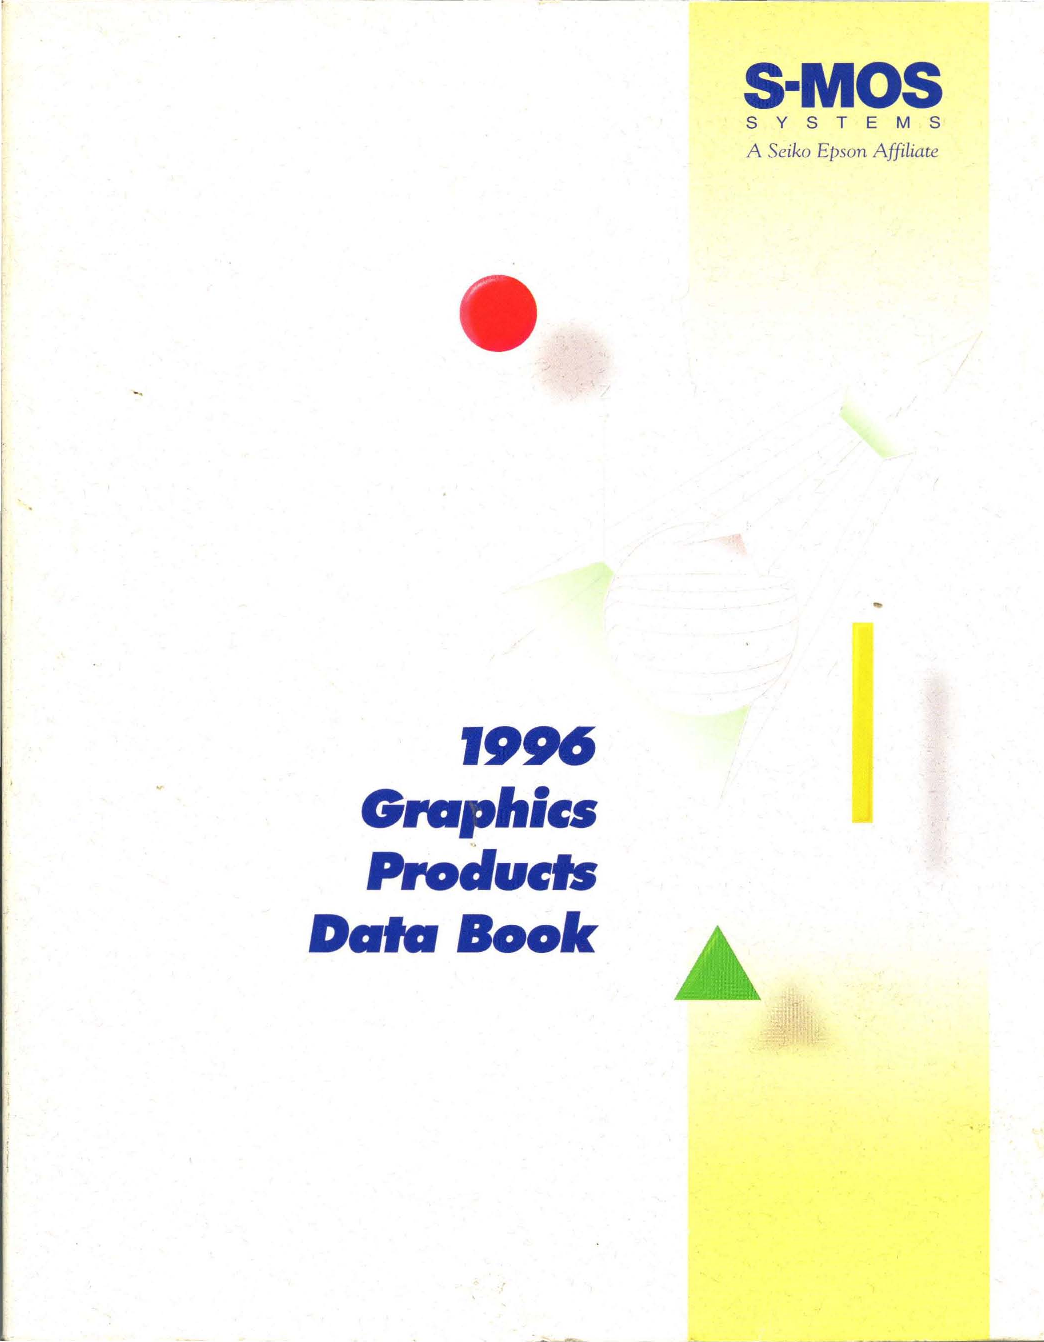 1996_S MOS_Graphics_Products_Data_Book 1996 S MOS Graphics